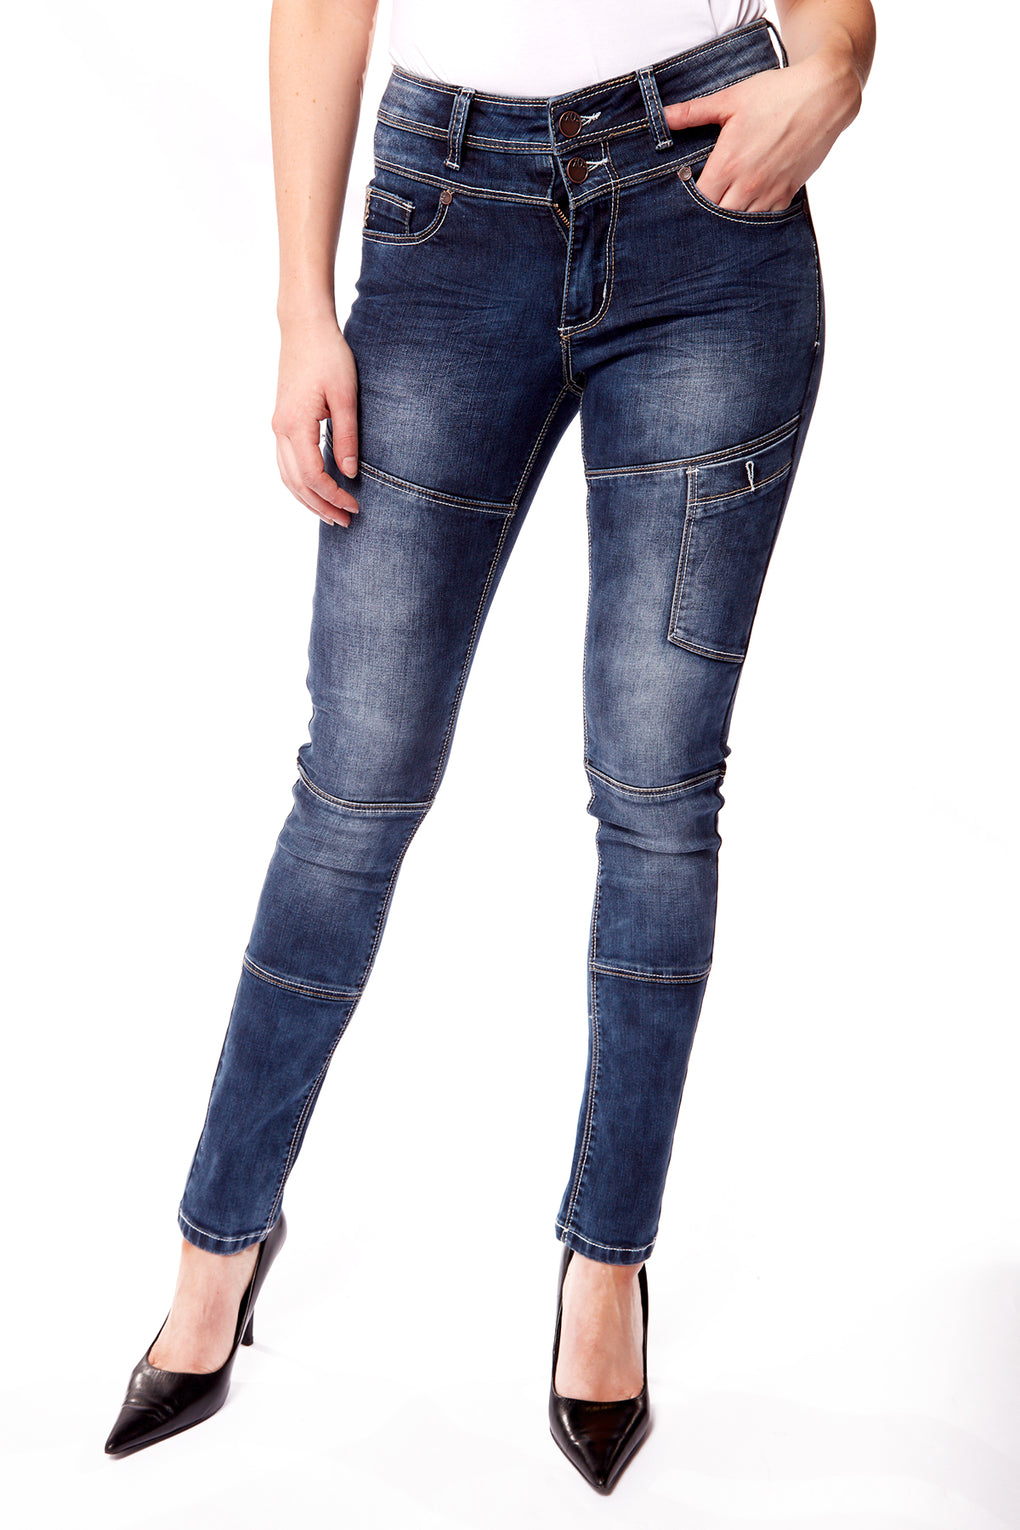 High Waist Skinny Jean with Waistband (FX-3991-REB)